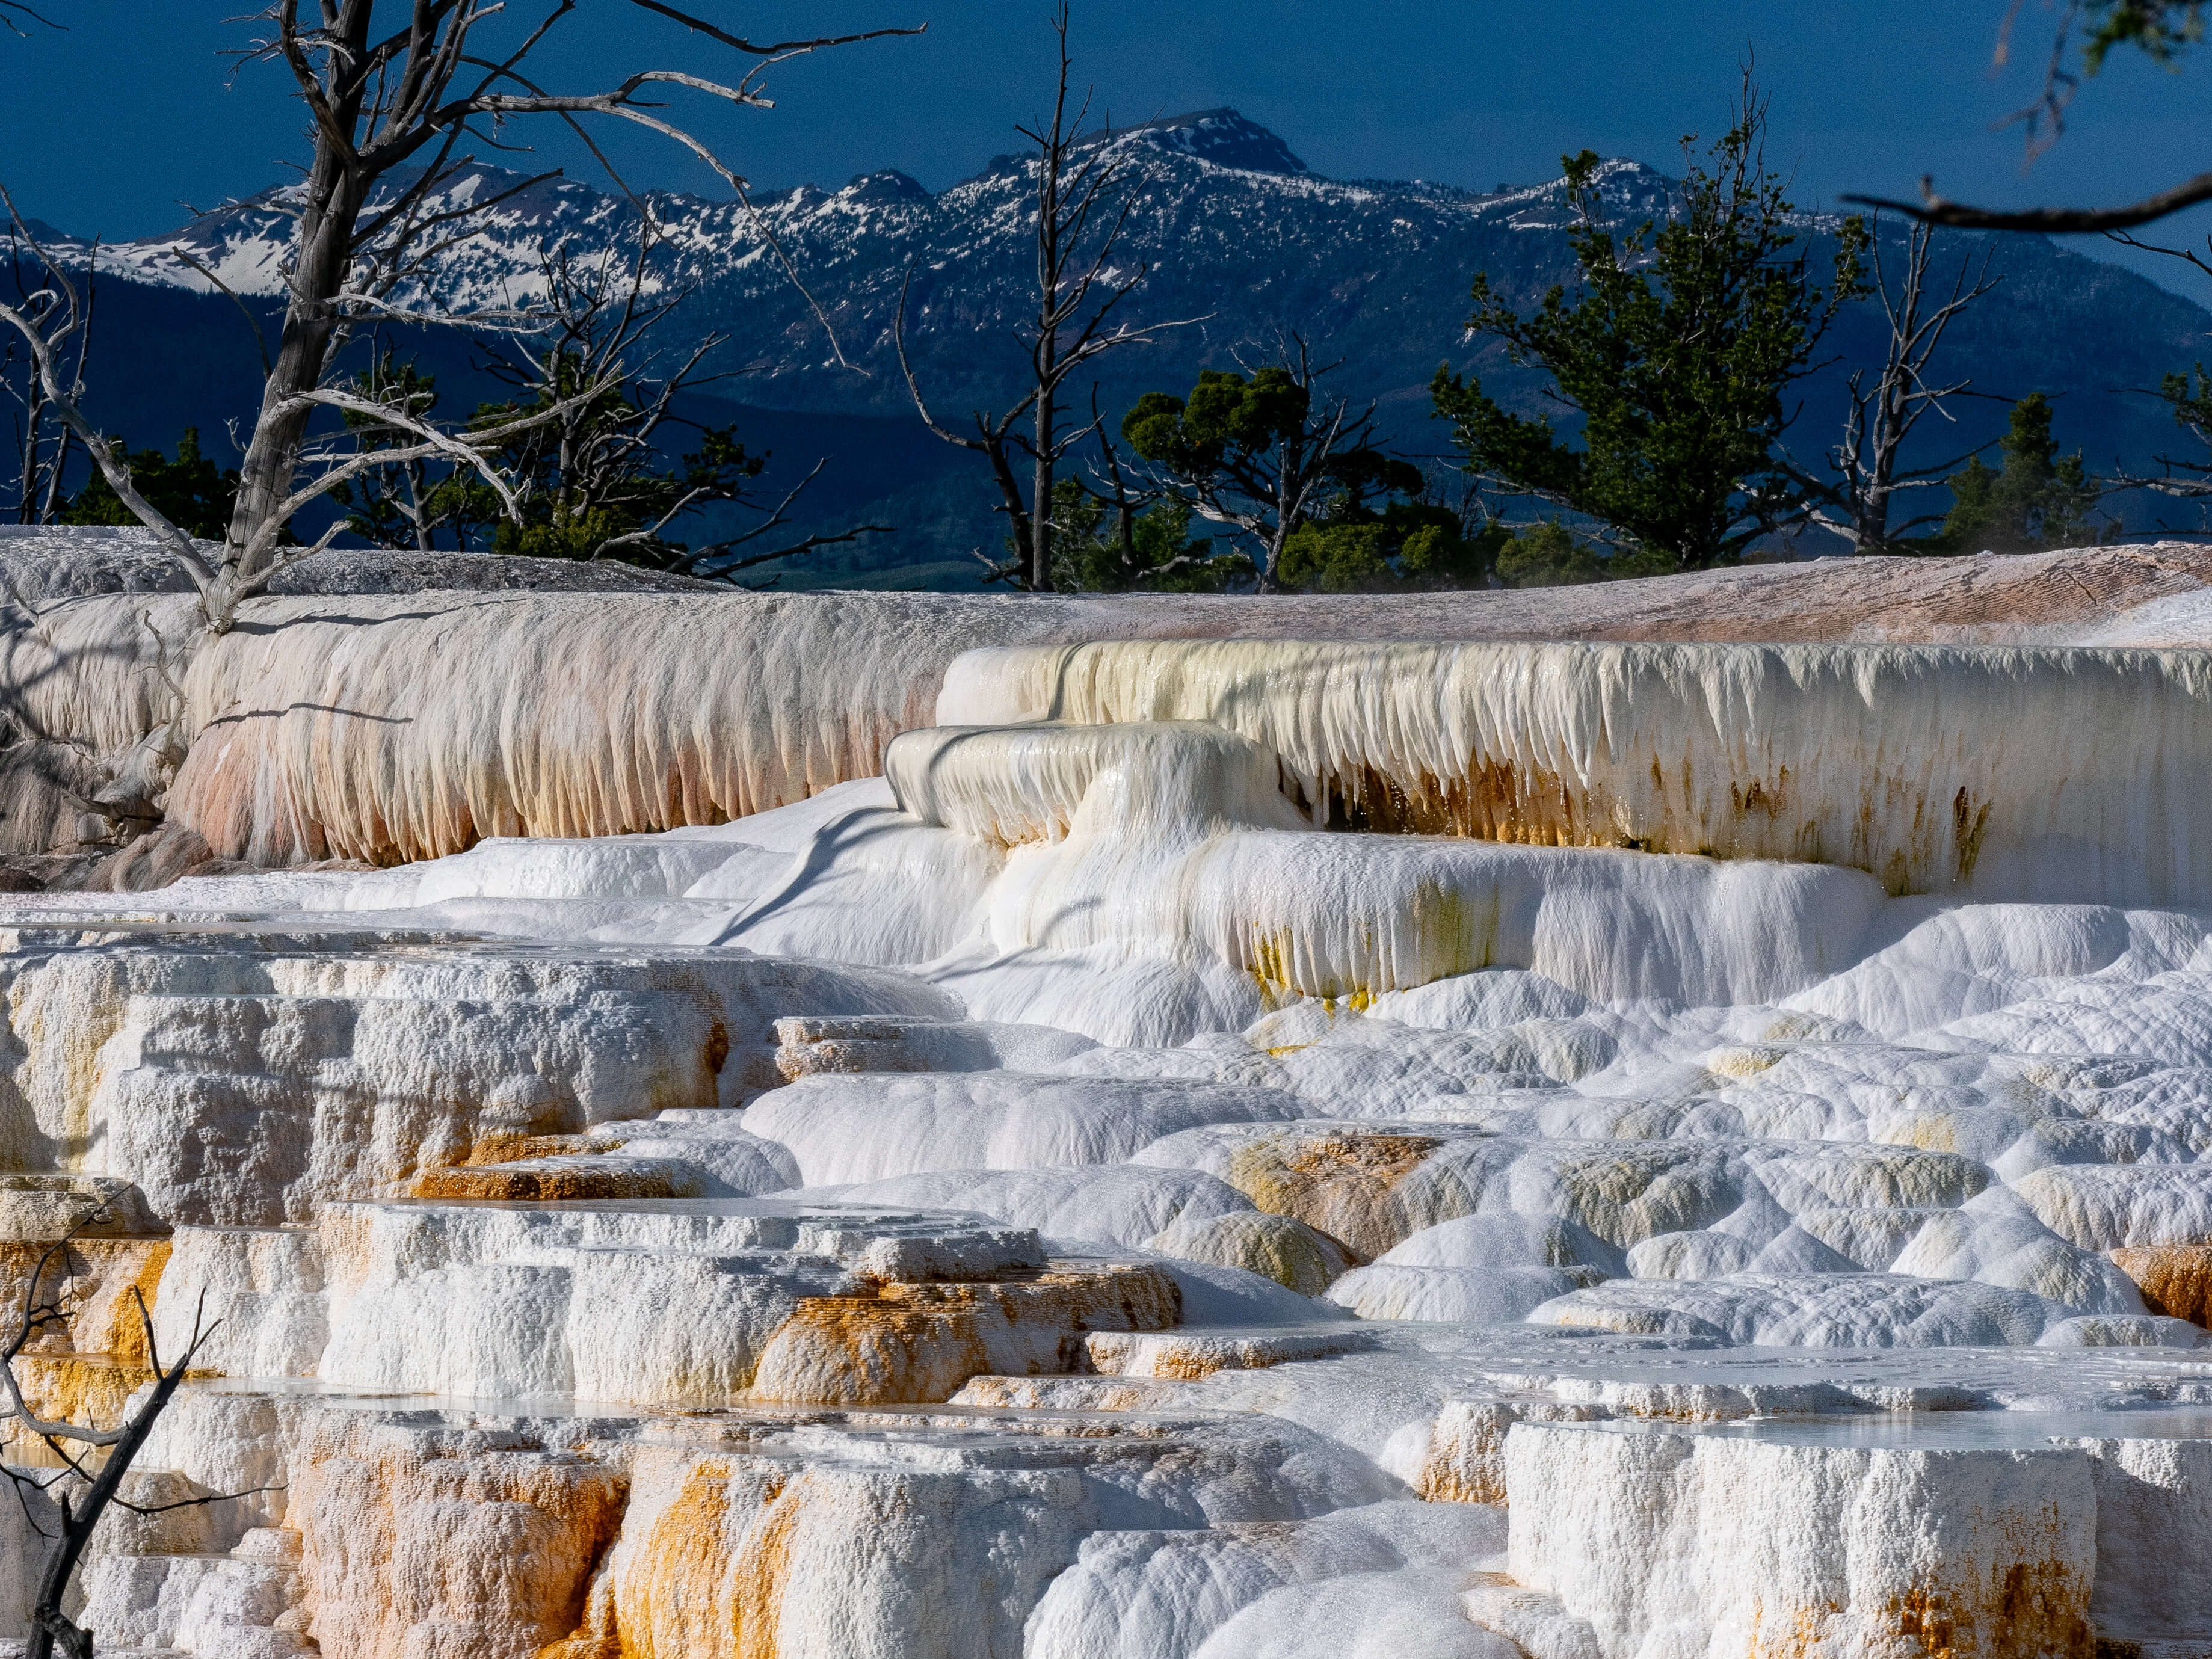 Travertine Terrace at Mammoth Hot Springs Yellowstone